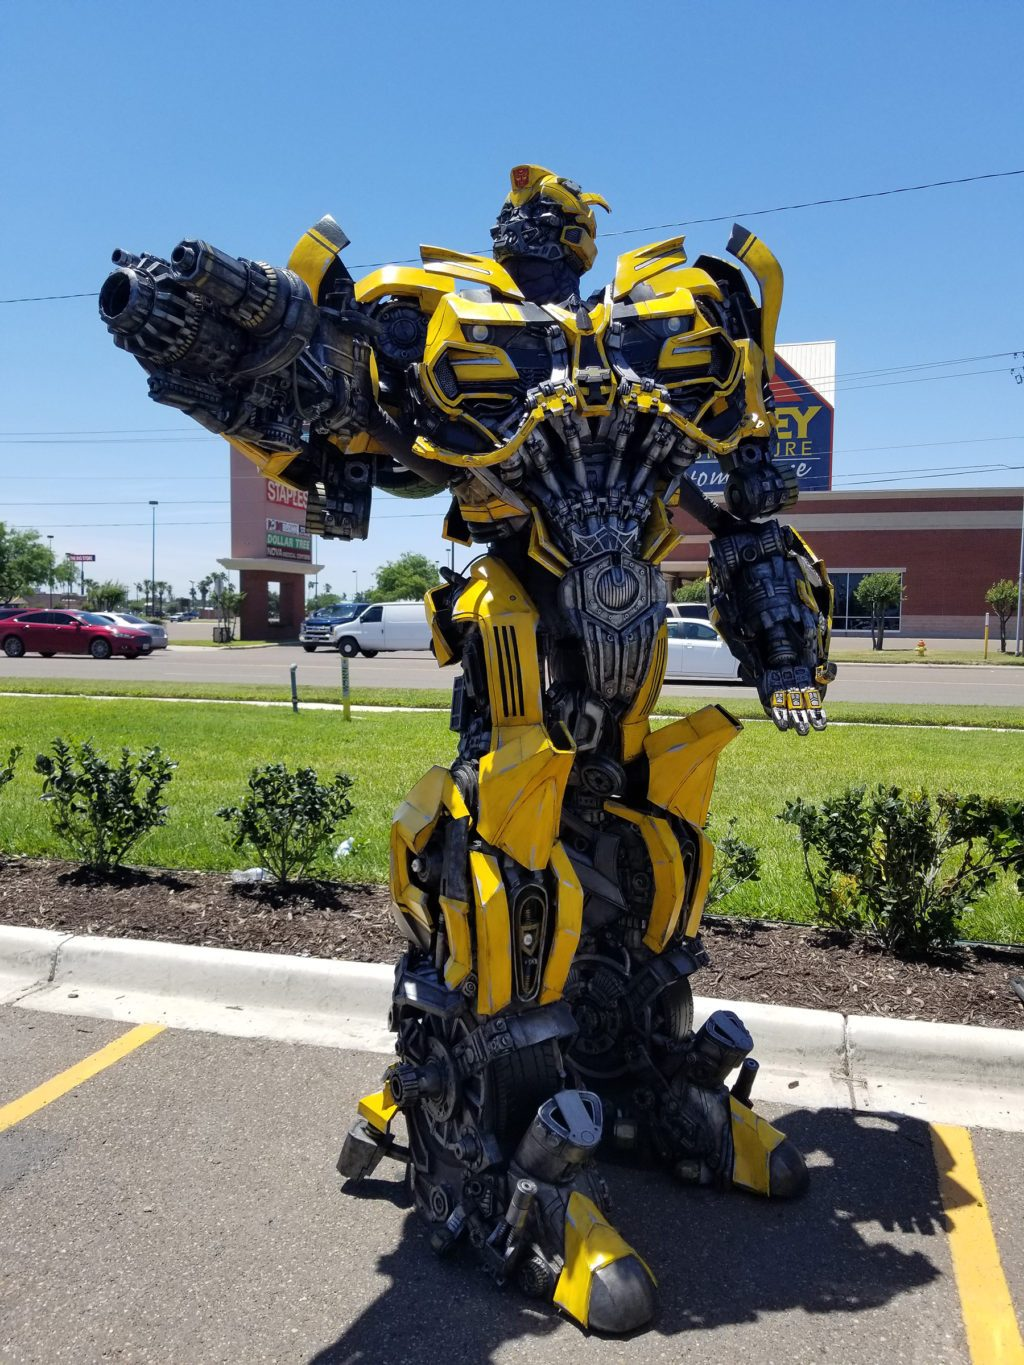 The Amazing Bumblebee